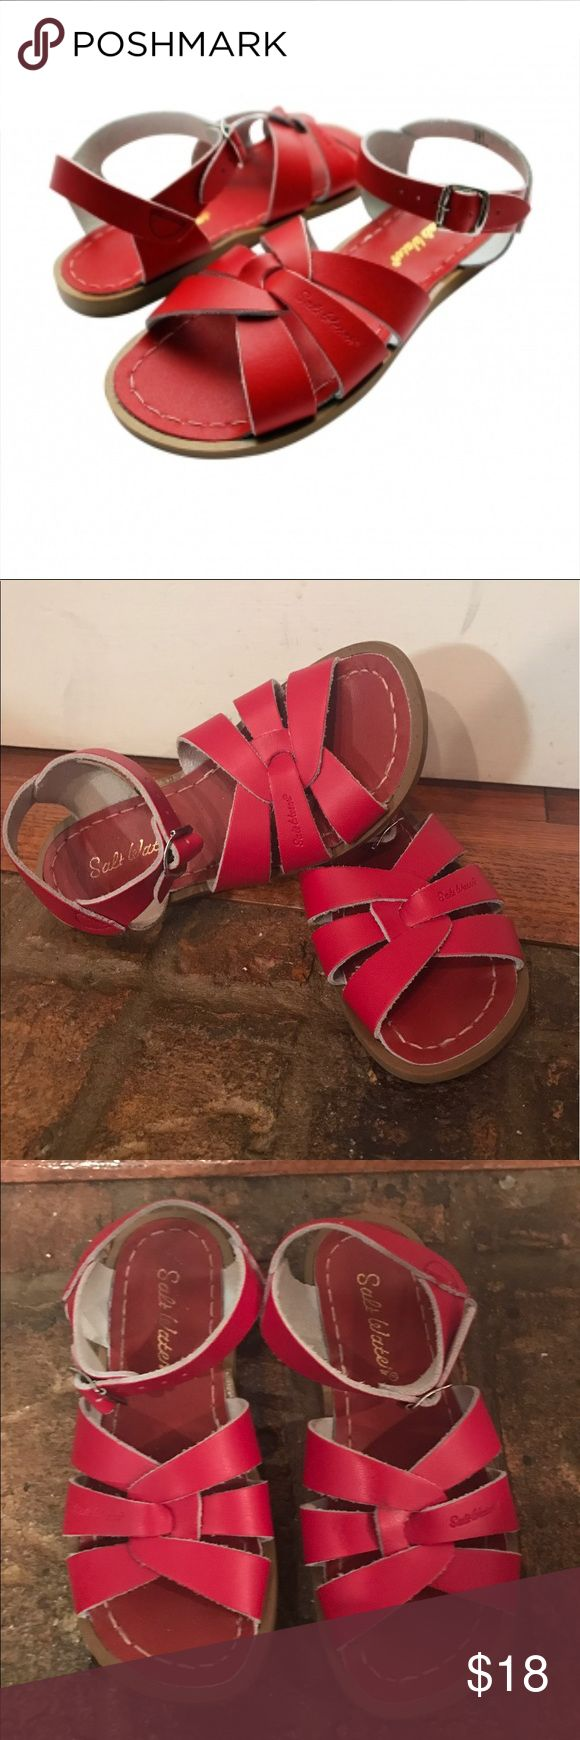 Girl salt water brand leather sandals Girl salt water brand leather sandals in a size 12 the color is red & they were only worn twice, excellent condition Salt Water Sandals by Hoy Shoes Sandals & Flip Flops